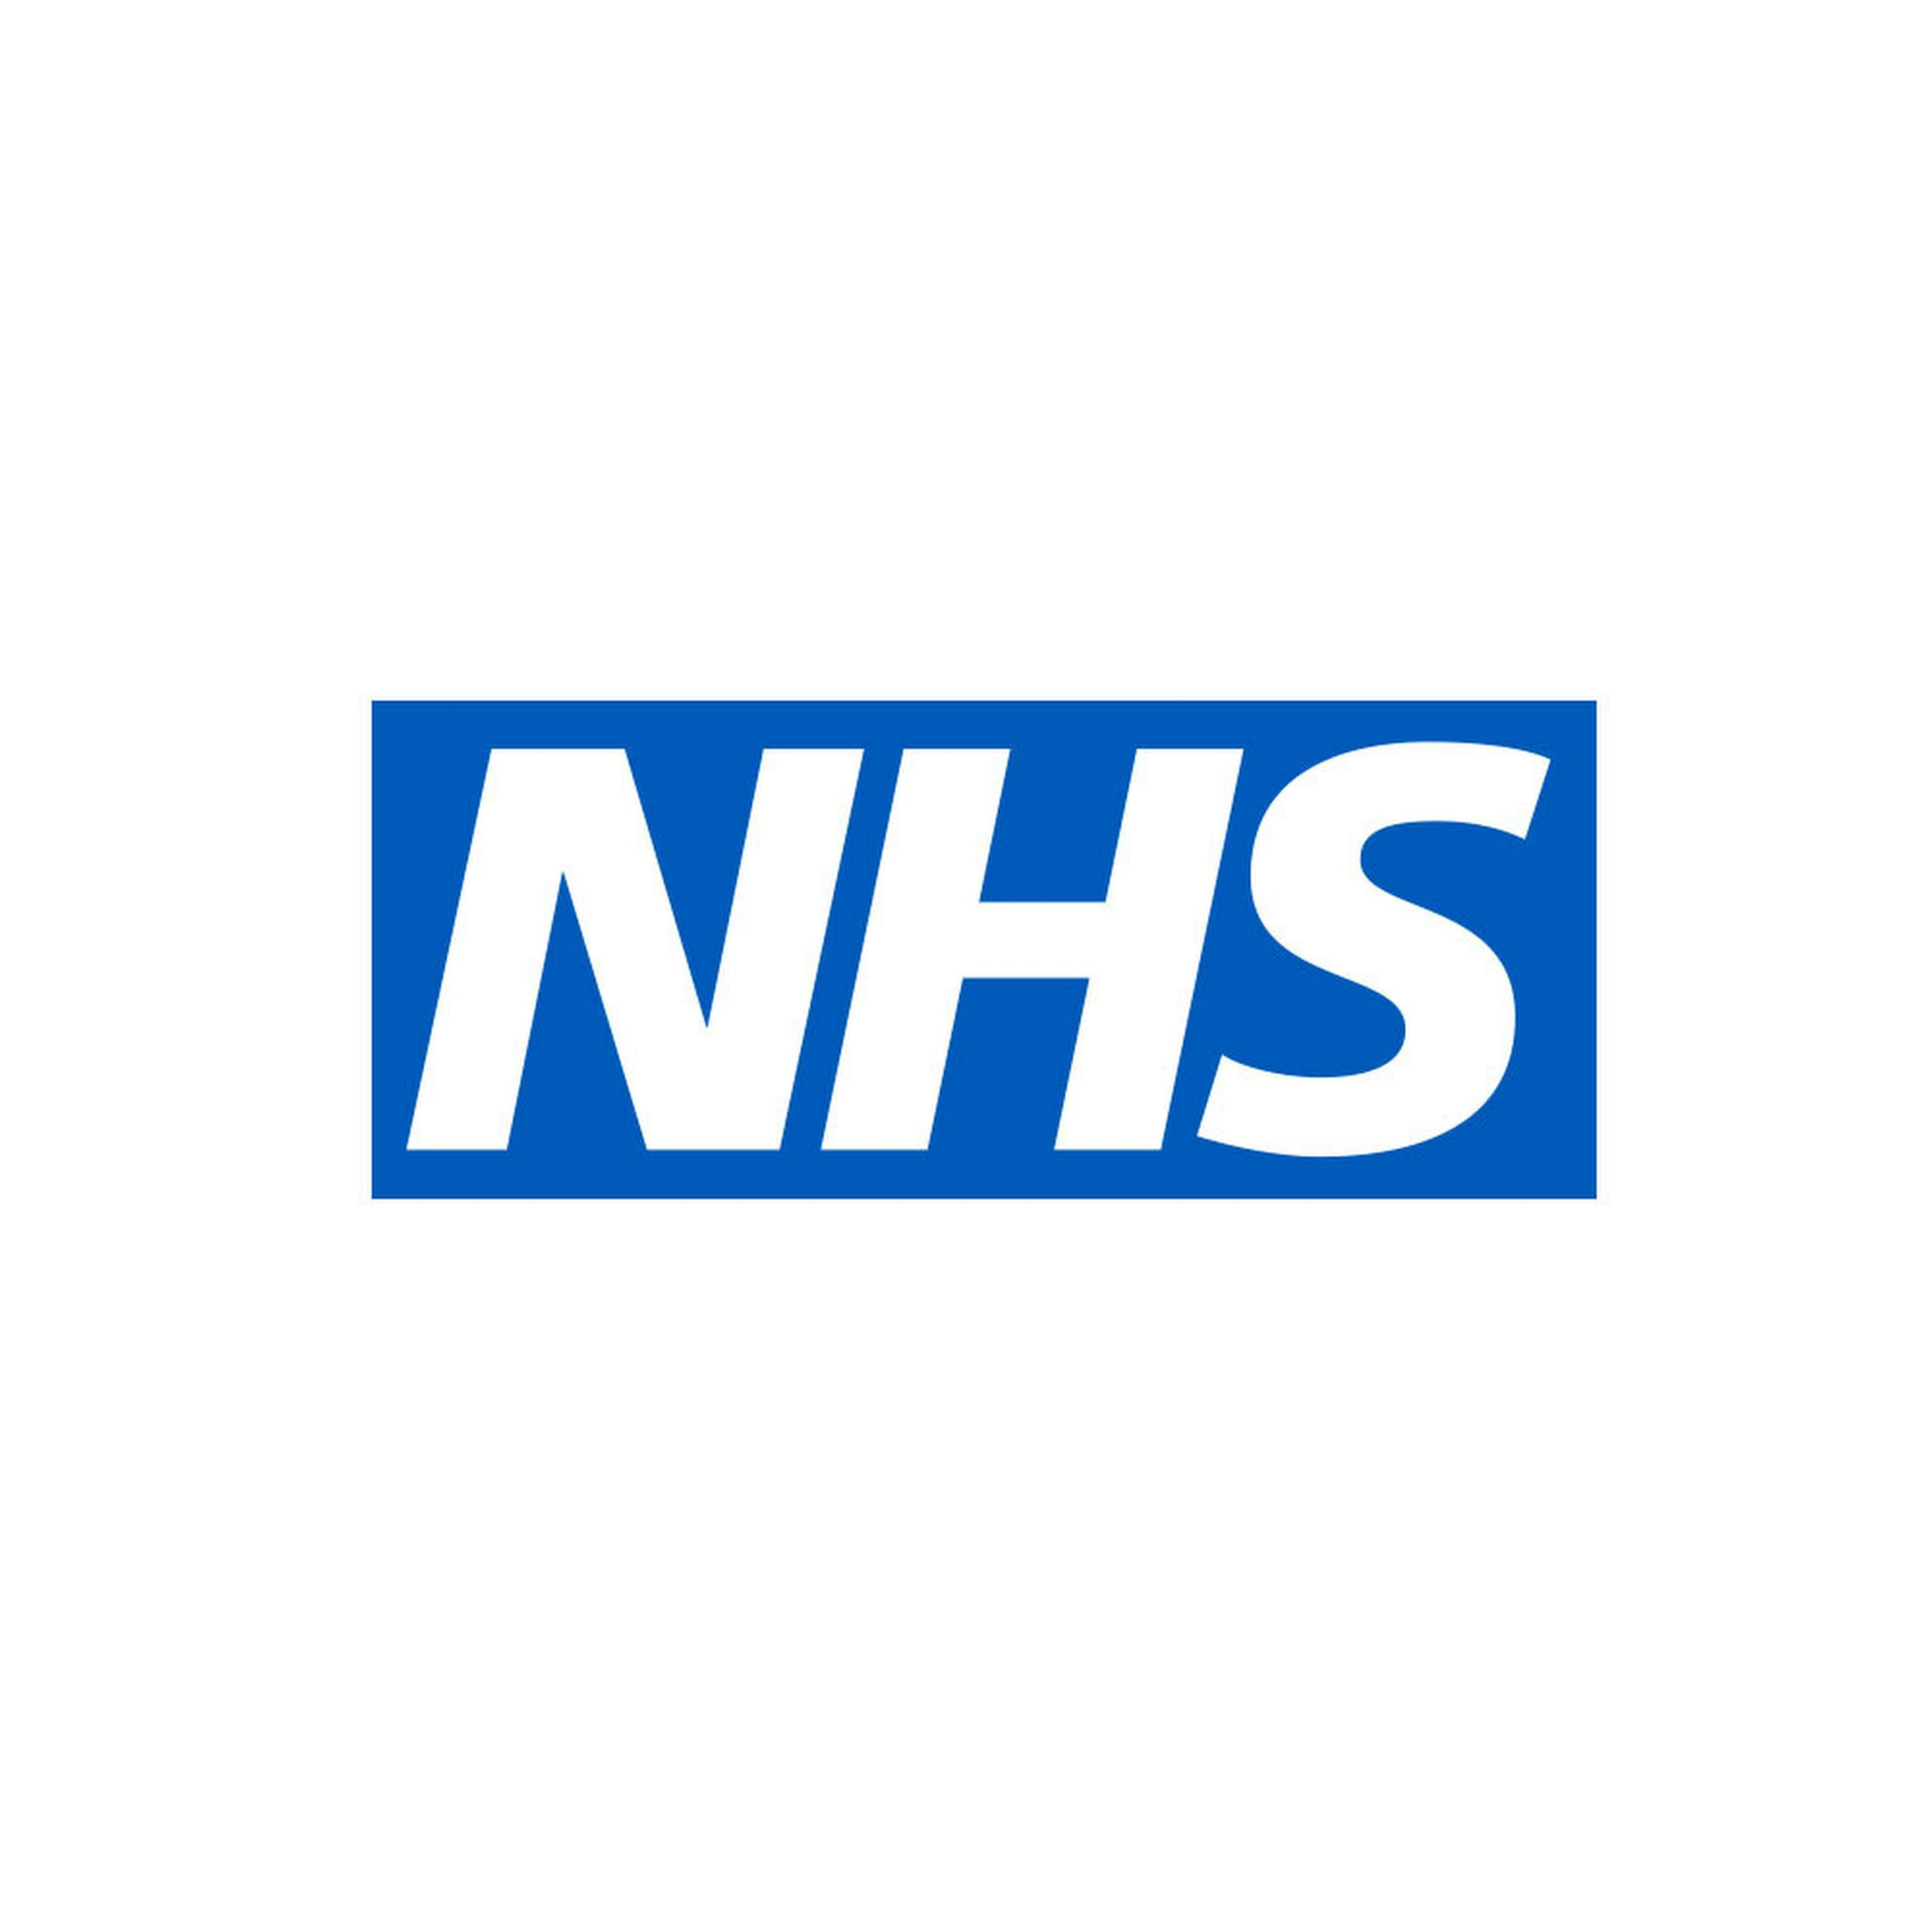 NHS Logo scaled